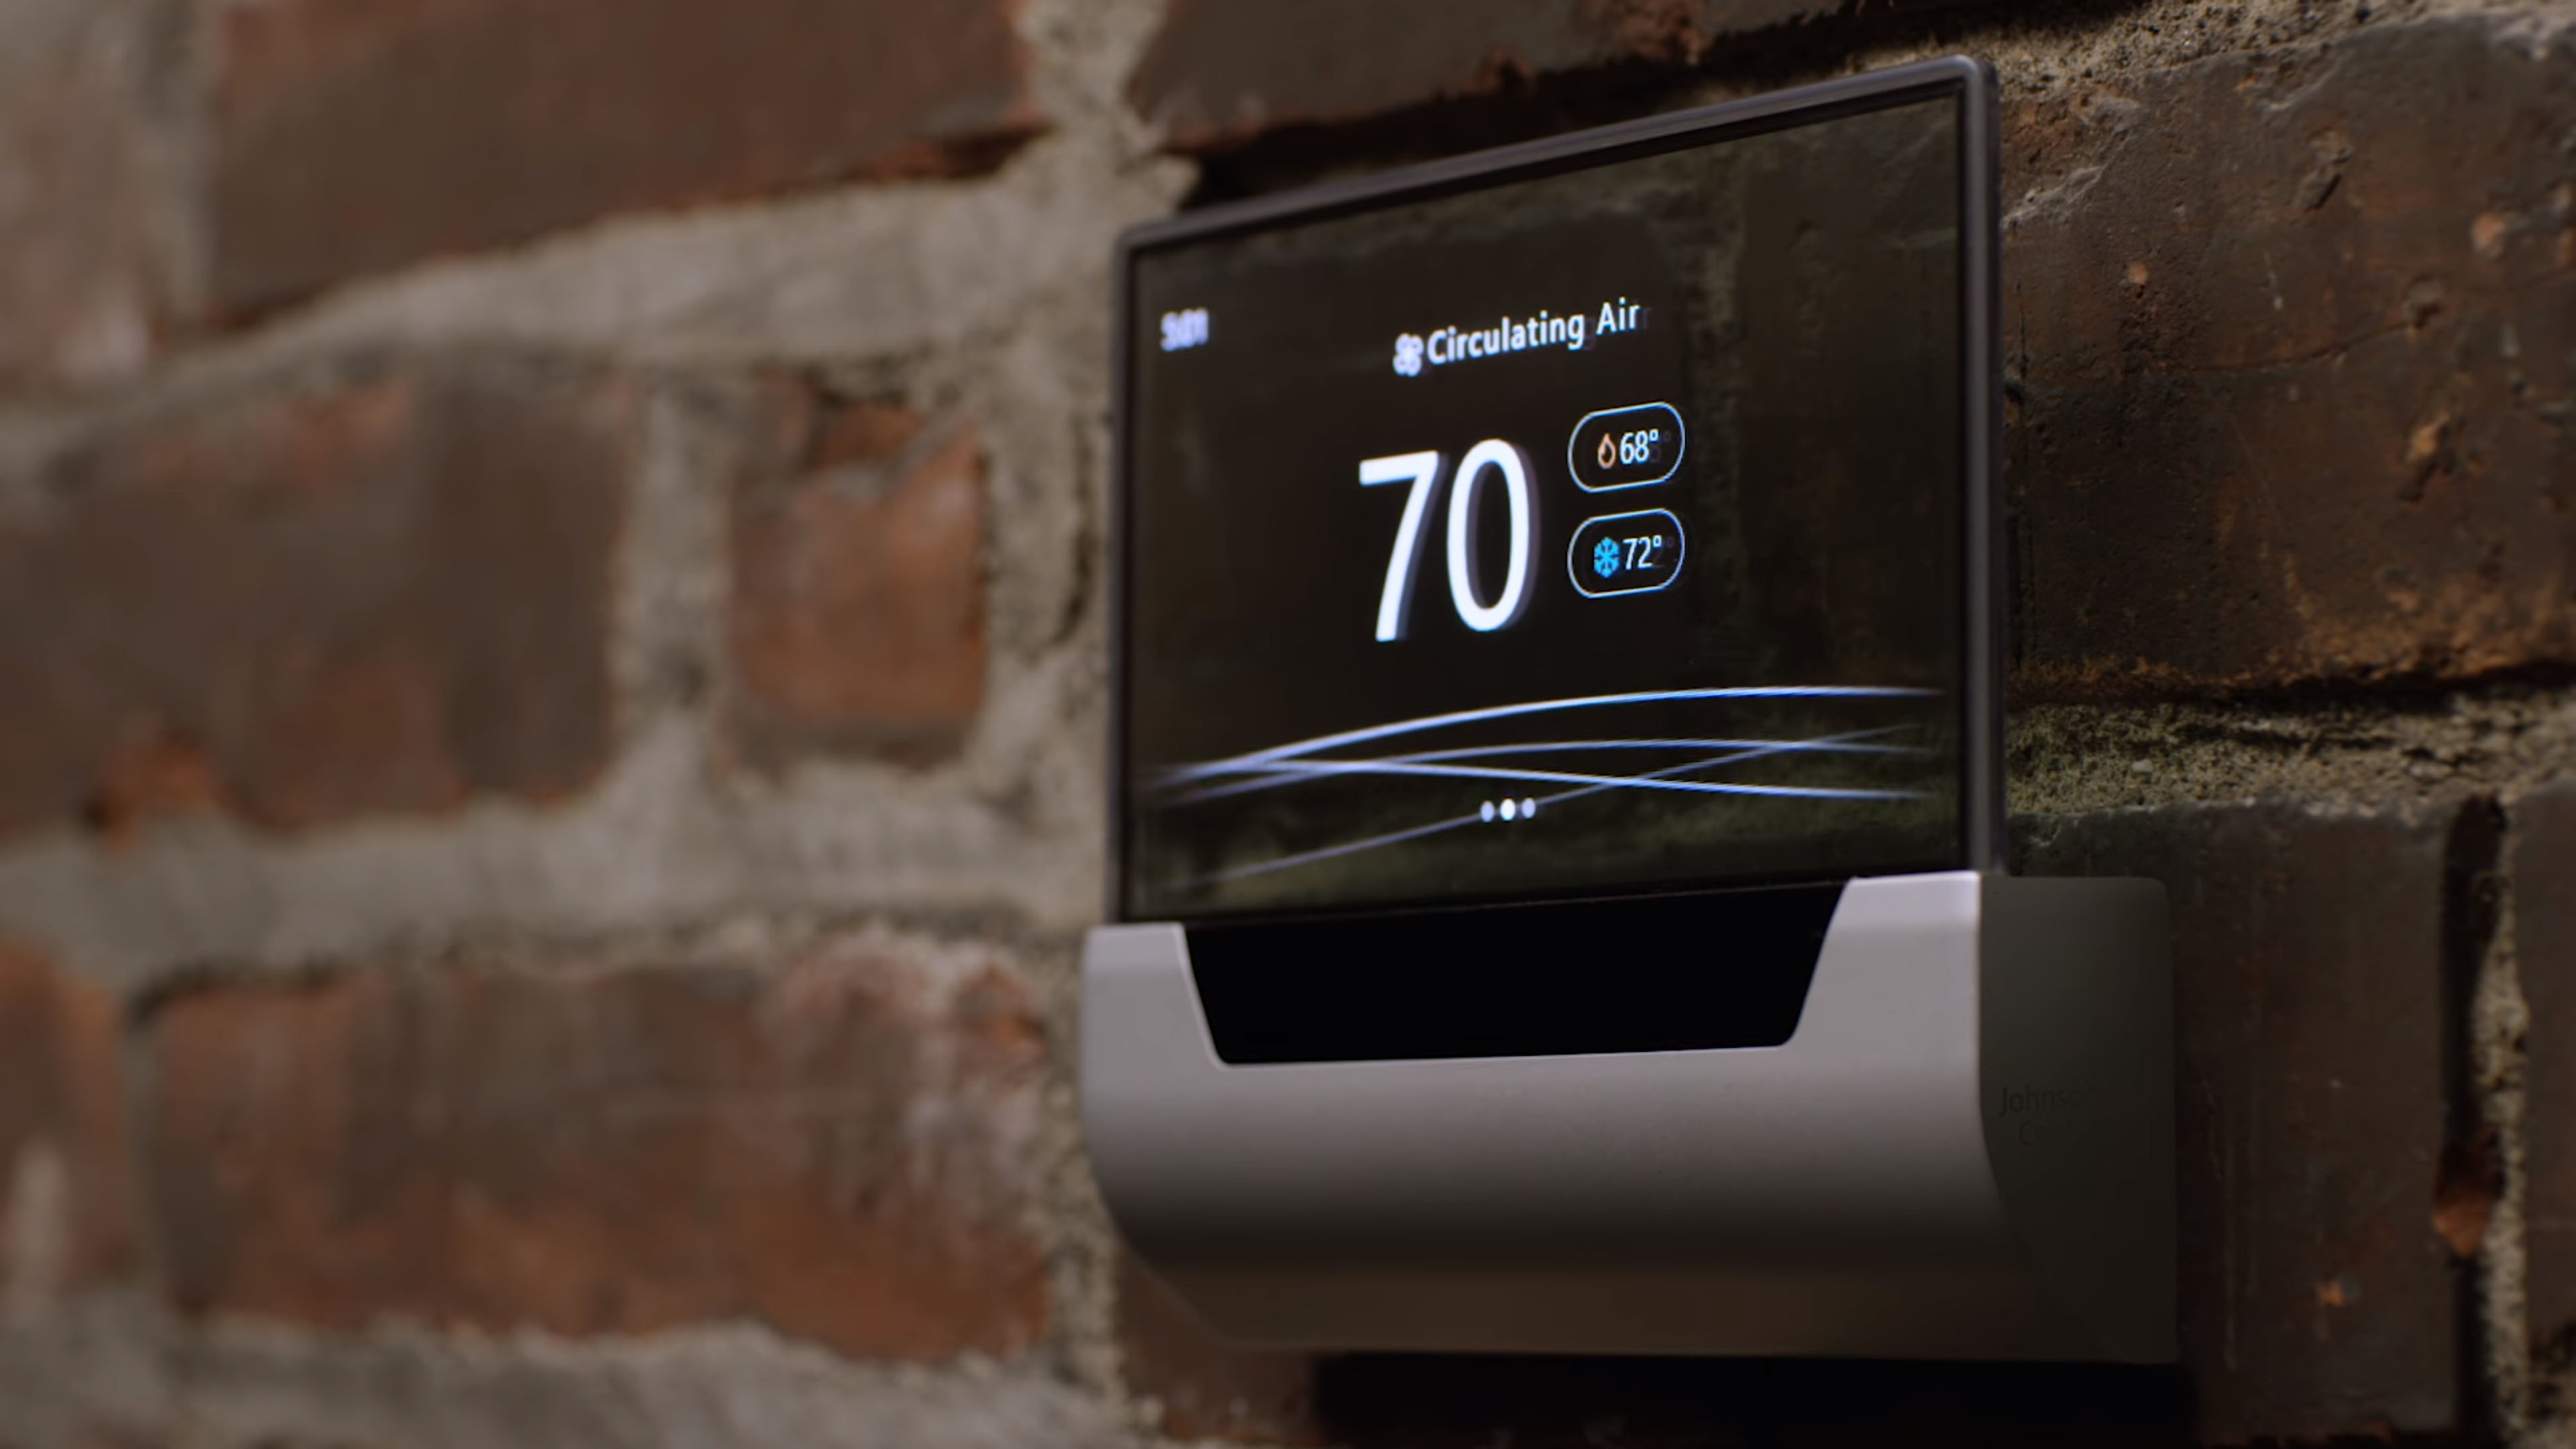 Microsoft shares pre-order details for the $319 Cortana thermostat